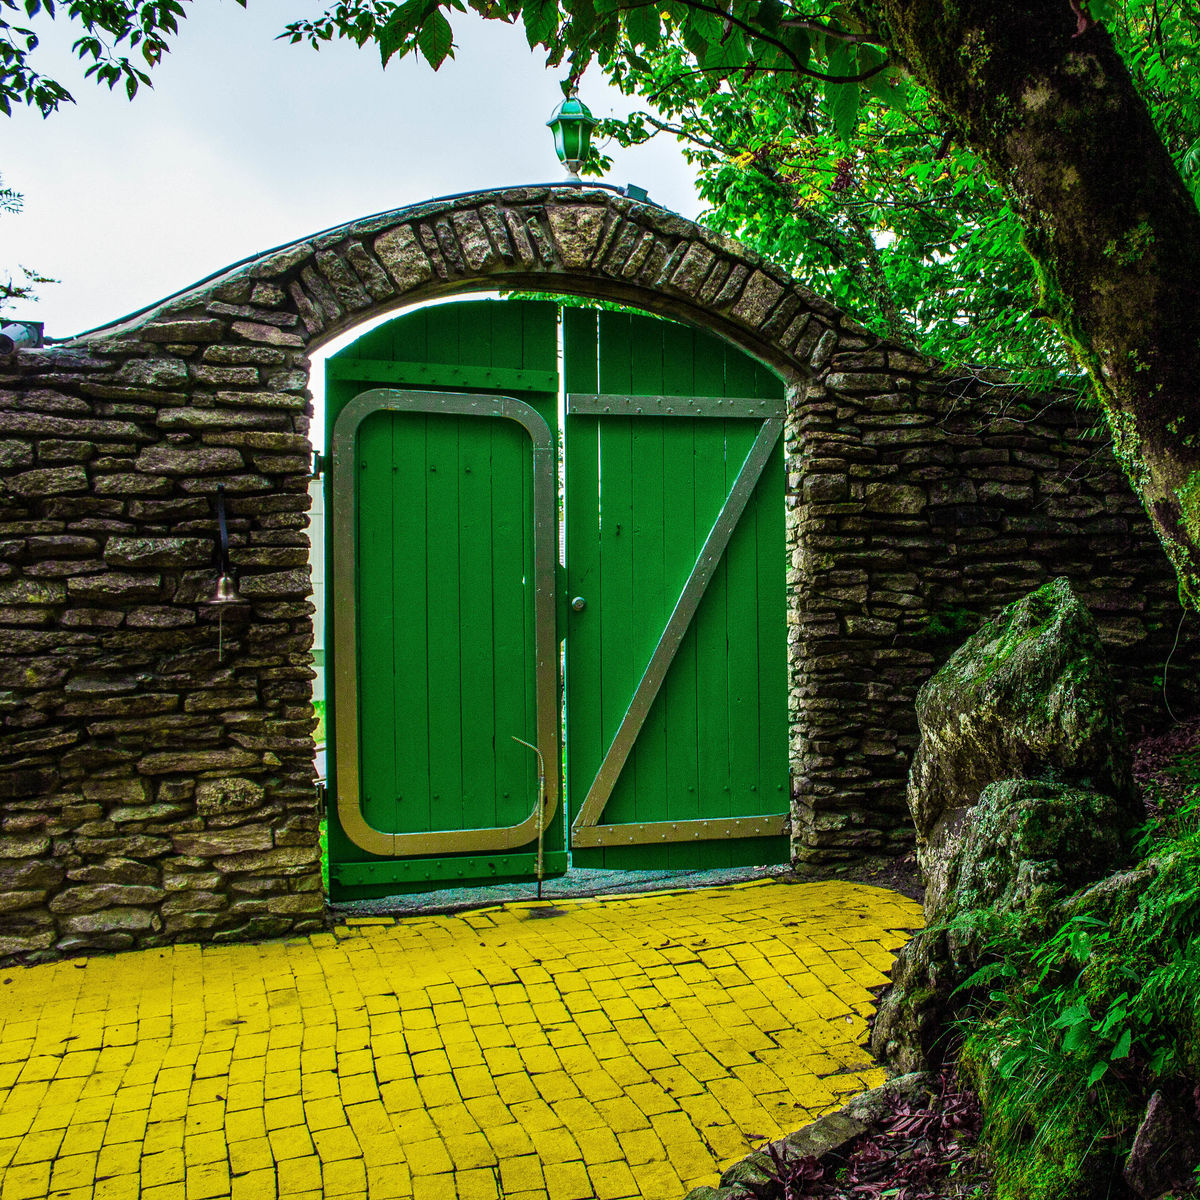 Geek Road Trip: Wizard Of Oz Theme Park In The Mountains